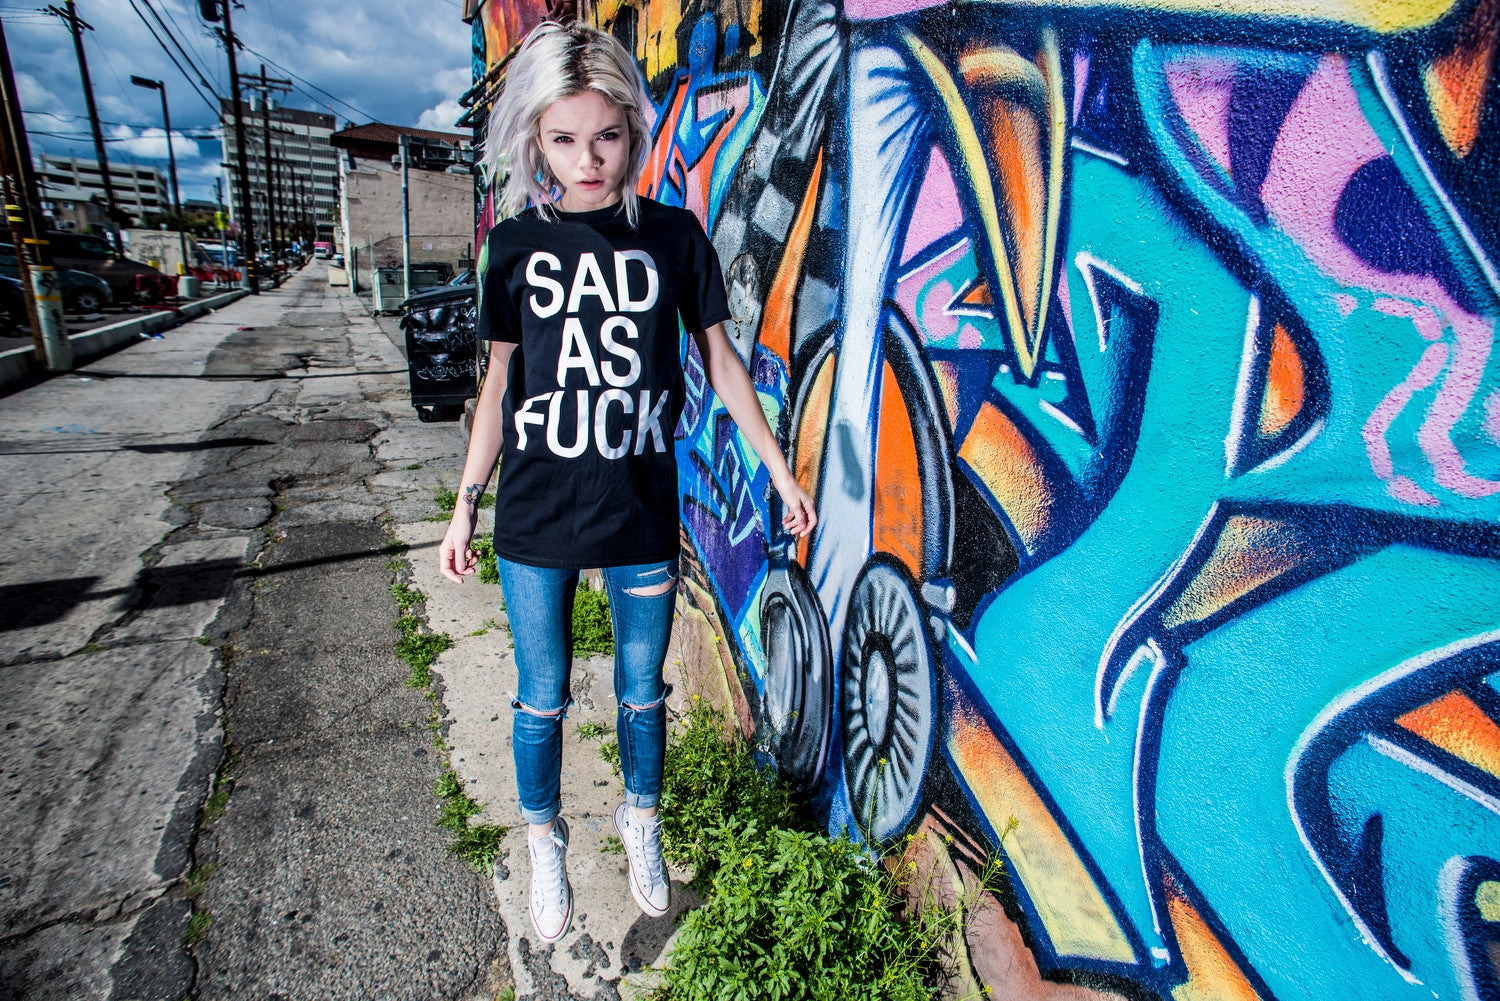 Sad As Fuck T-Shirt